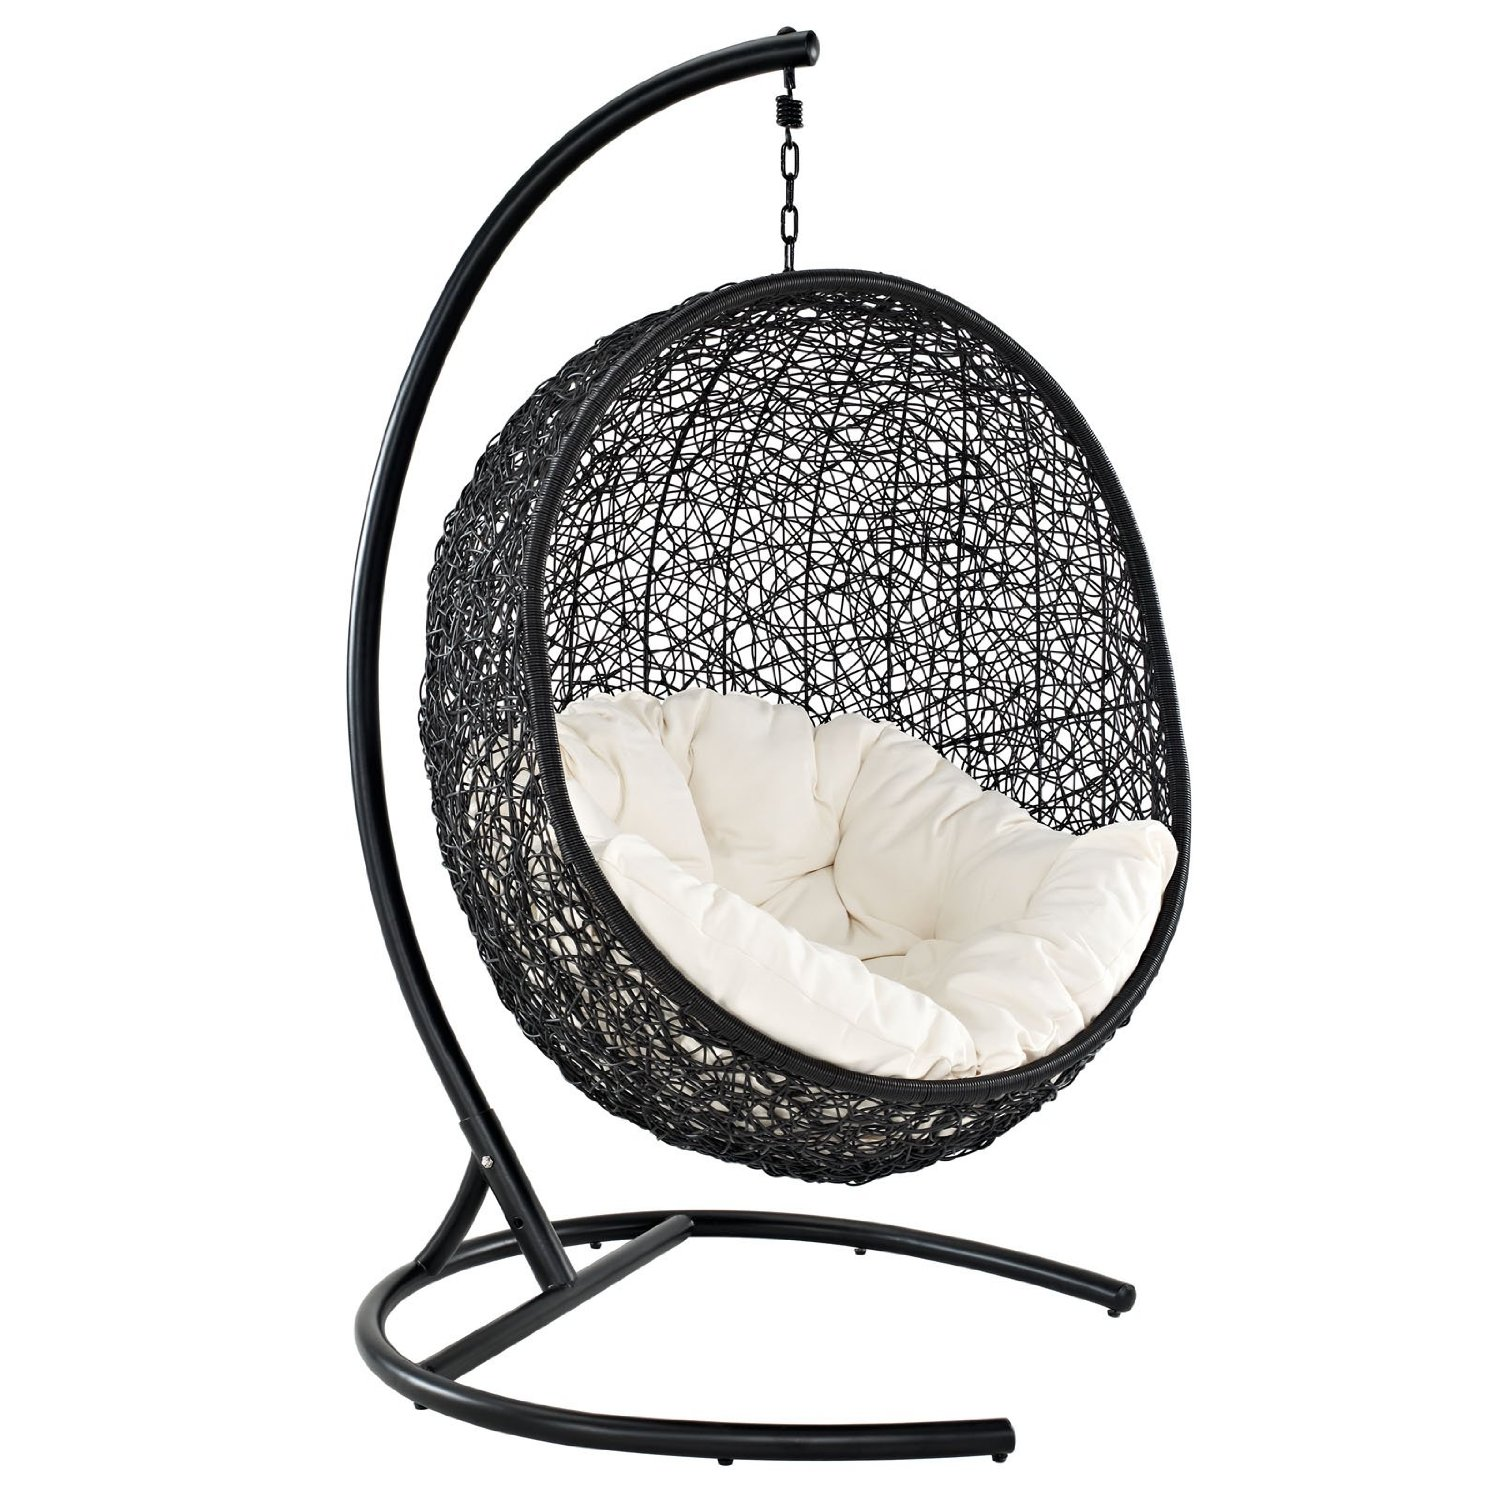 black Wicker Rattan swingasan chair with white cushion and black metal stand ideas